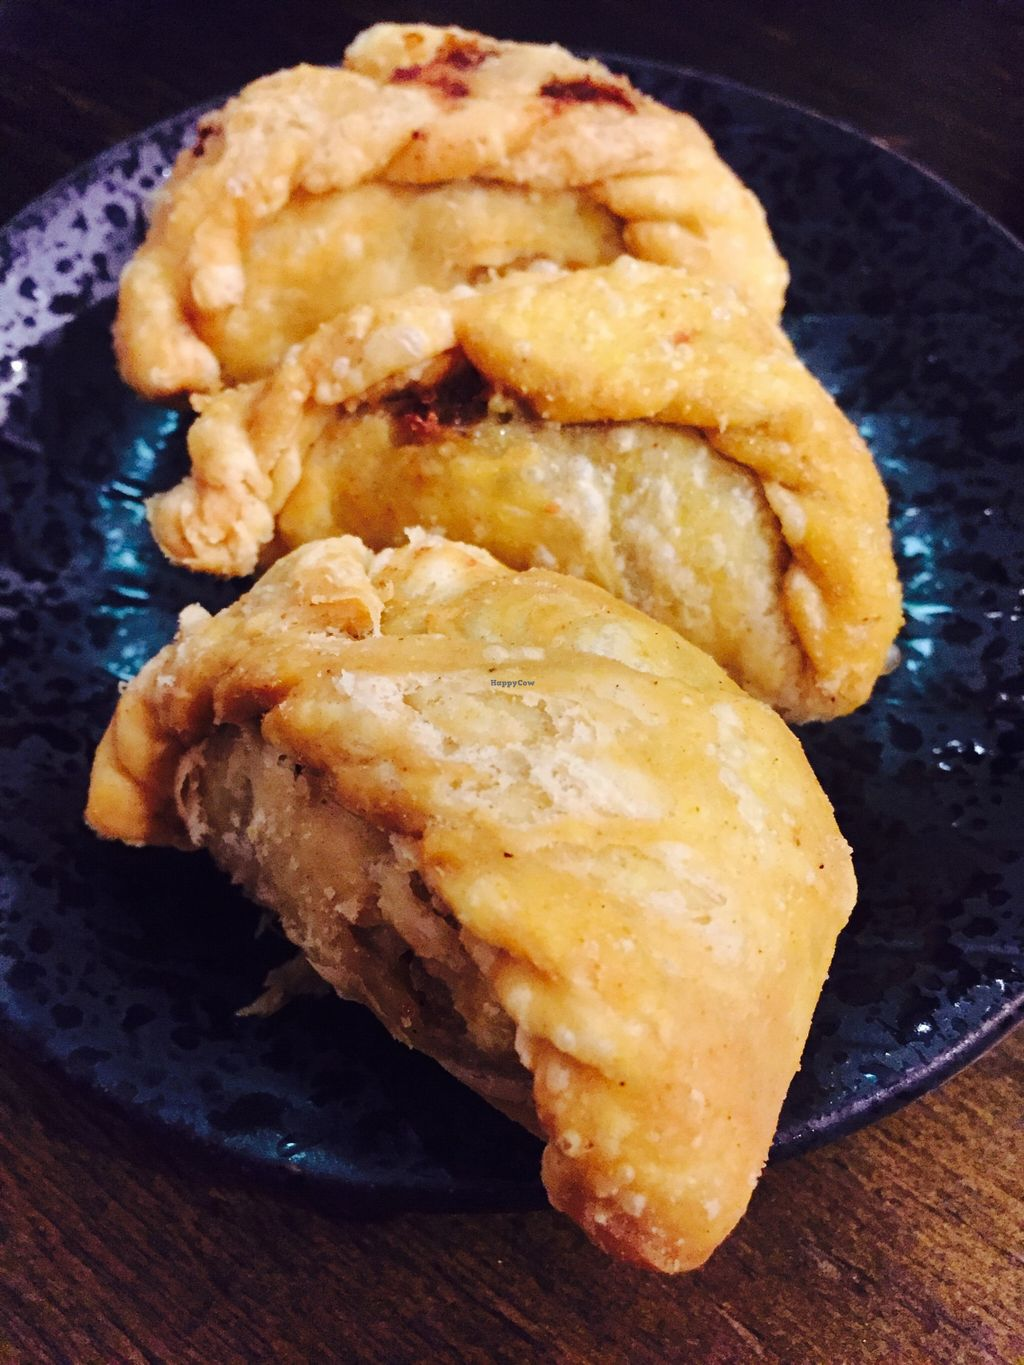 """Photo of Vegeme  by <a href=""""/members/profile/karlaess"""">karlaess</a> <br/>Curry puffs <br/> May 14, 2016  - <a href='/contact/abuse/image/64155/148927'>Report</a>"""